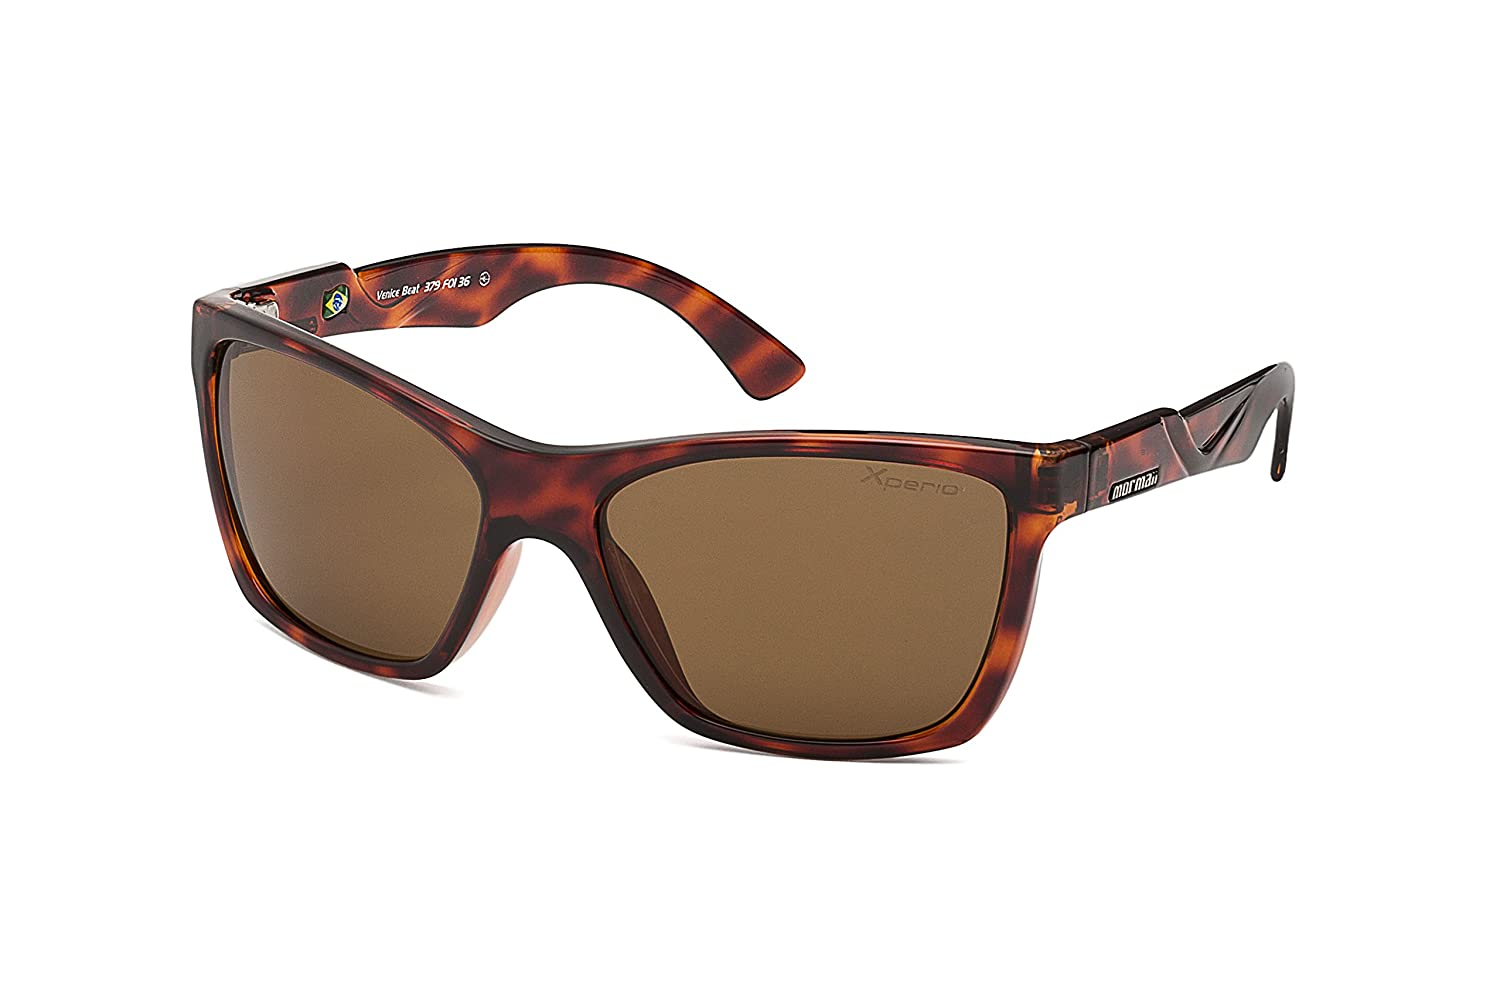 Gafas de sol Venice beat , Mormaii marron brillo polarizado